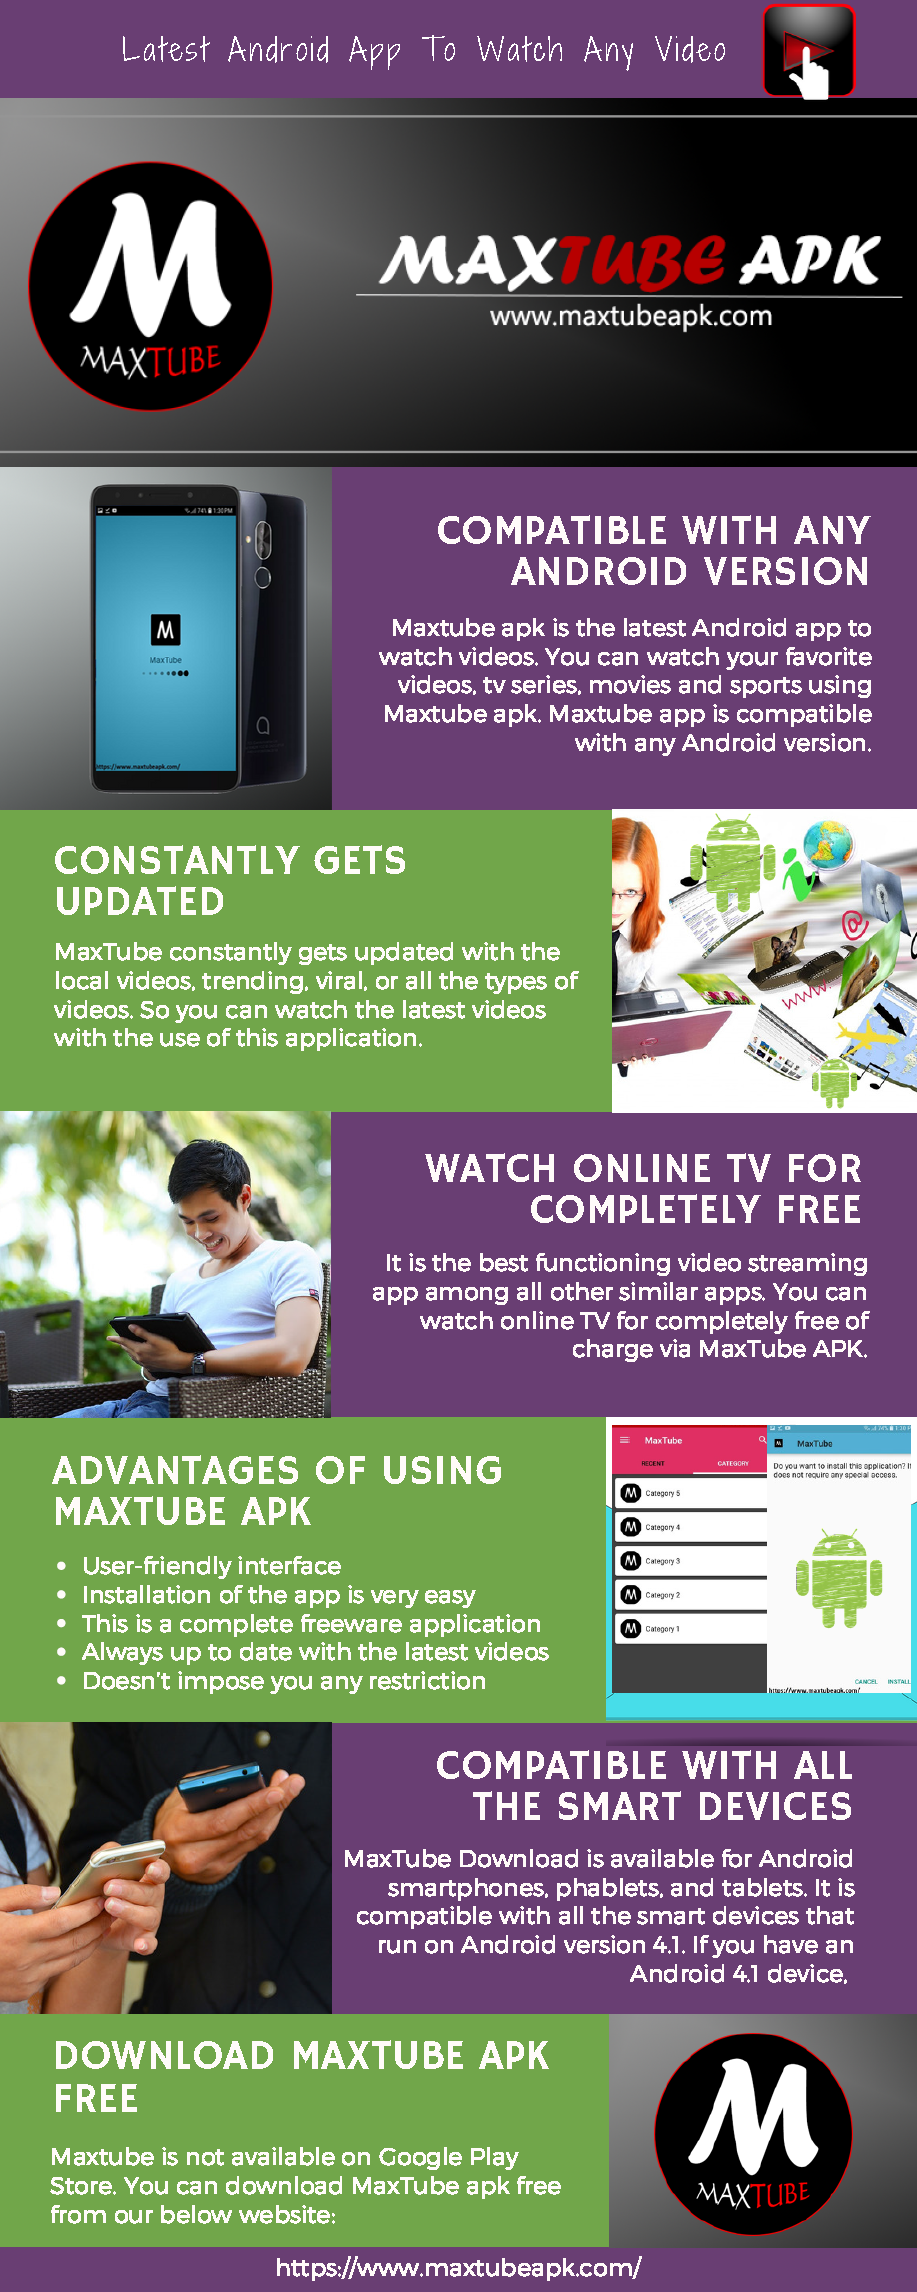 Pin by MaxTube APK on MaxTube APK in 2019 | Android, App, Watches online